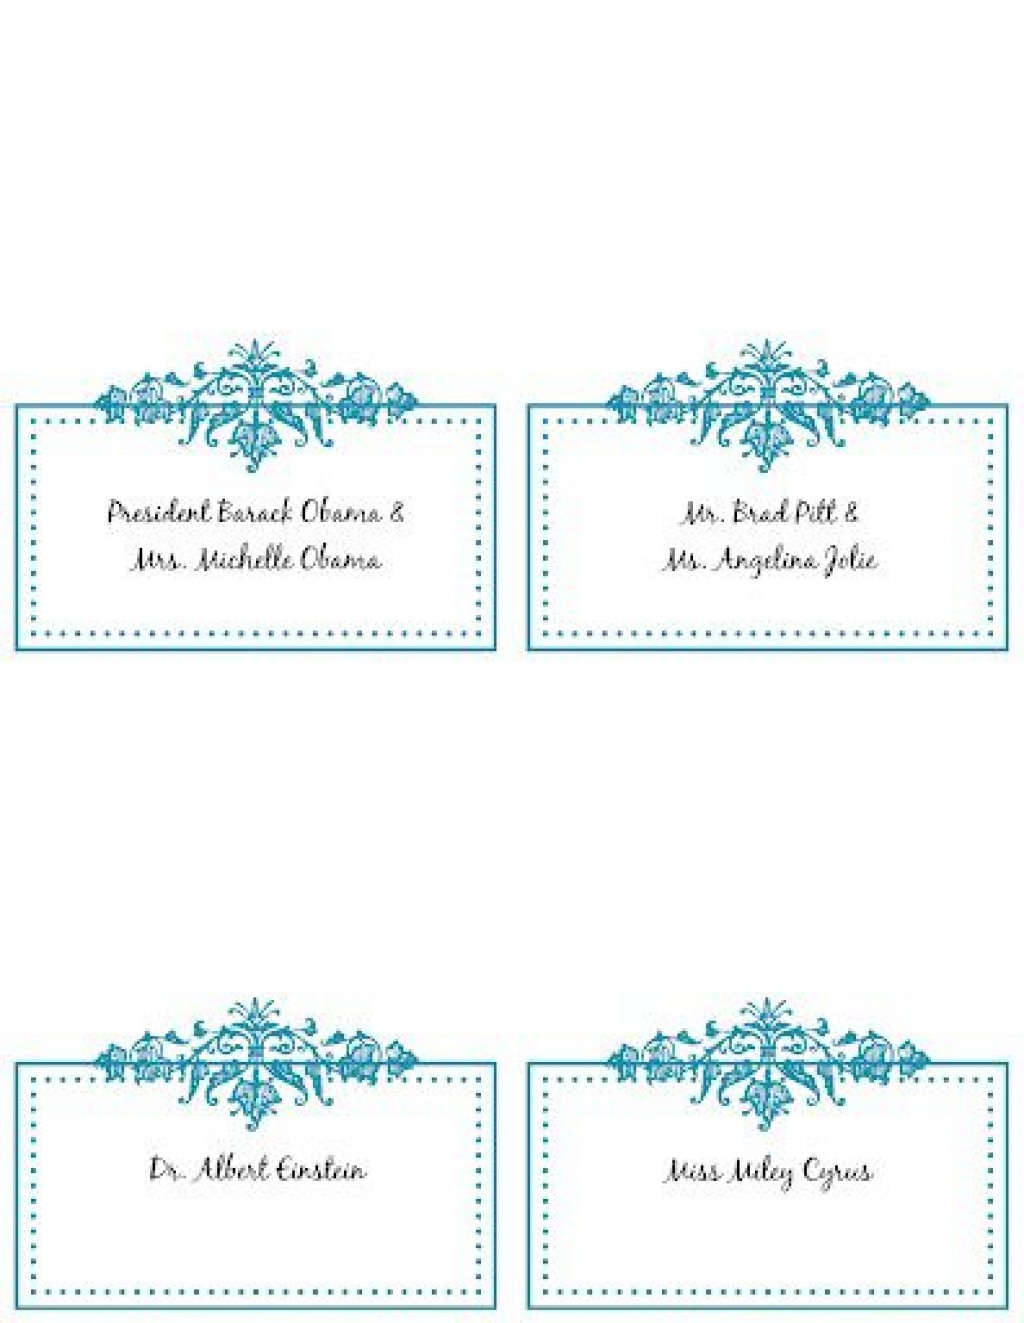 009 Wondrou Name Place Card Template Picture  Word Free MicrosoftLarge